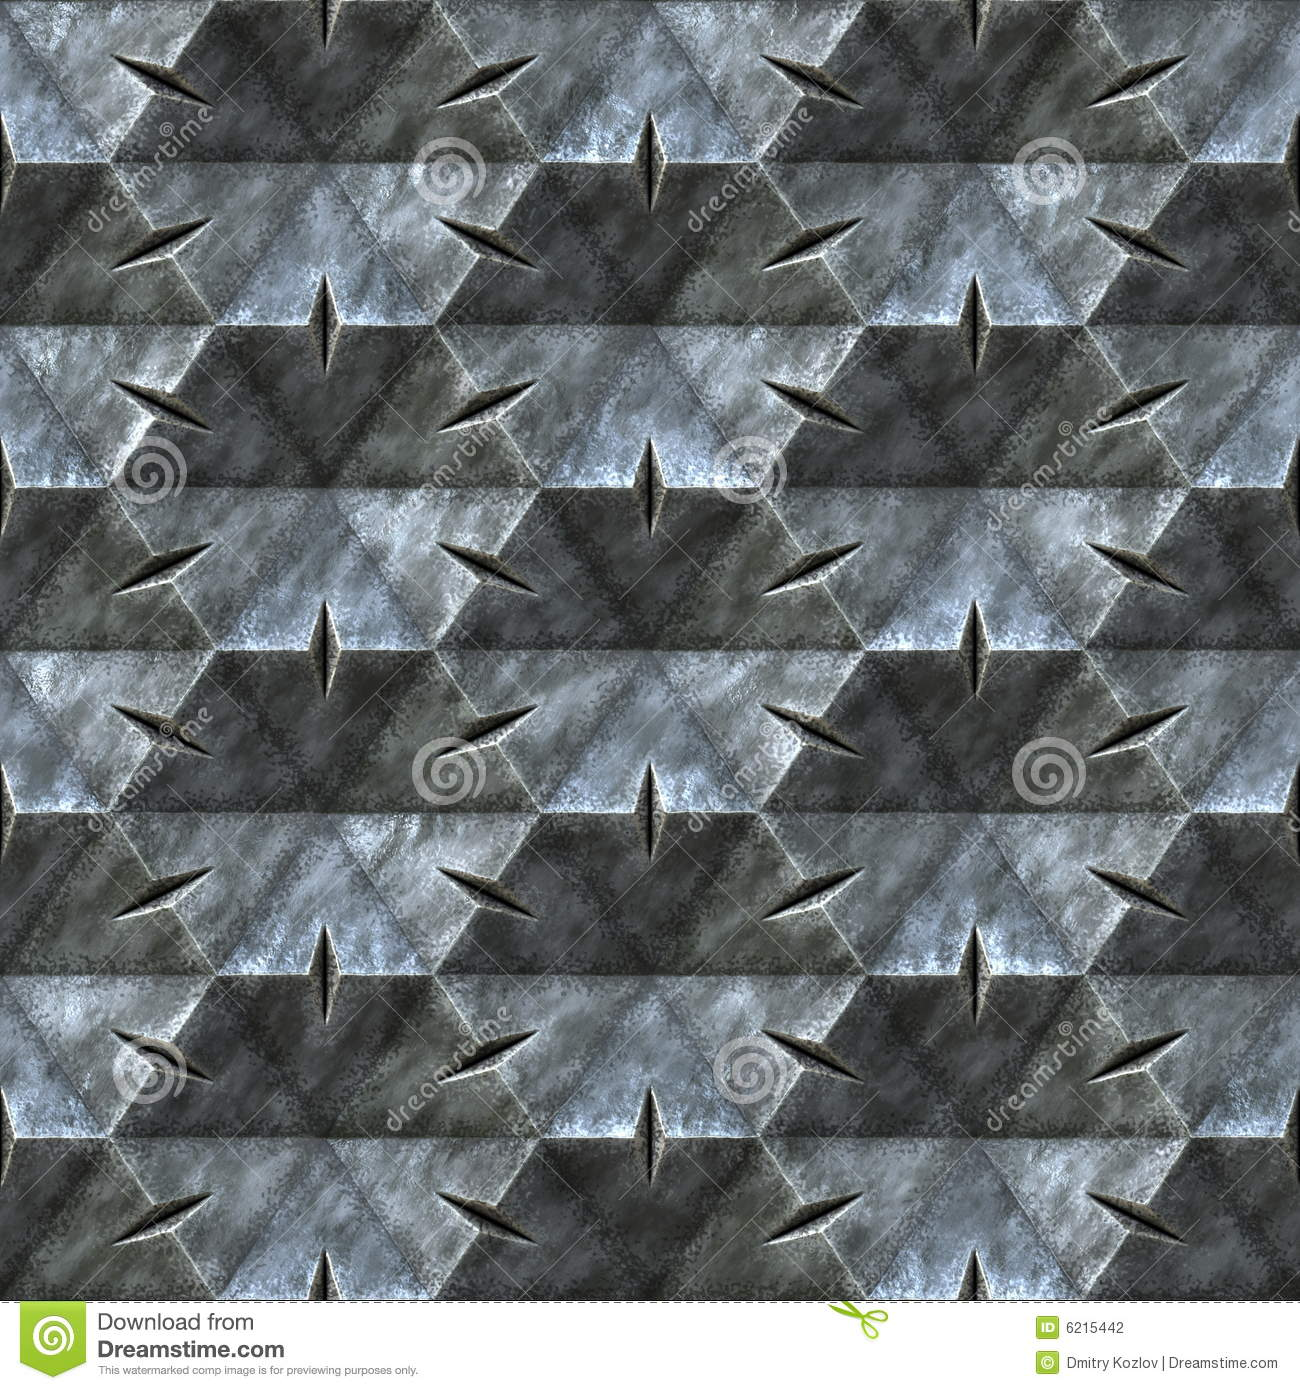 Royalty Free Stock Photo  Download Seamless metal texture. Seamless metal texture stock illustration  Image of zinc   6215442